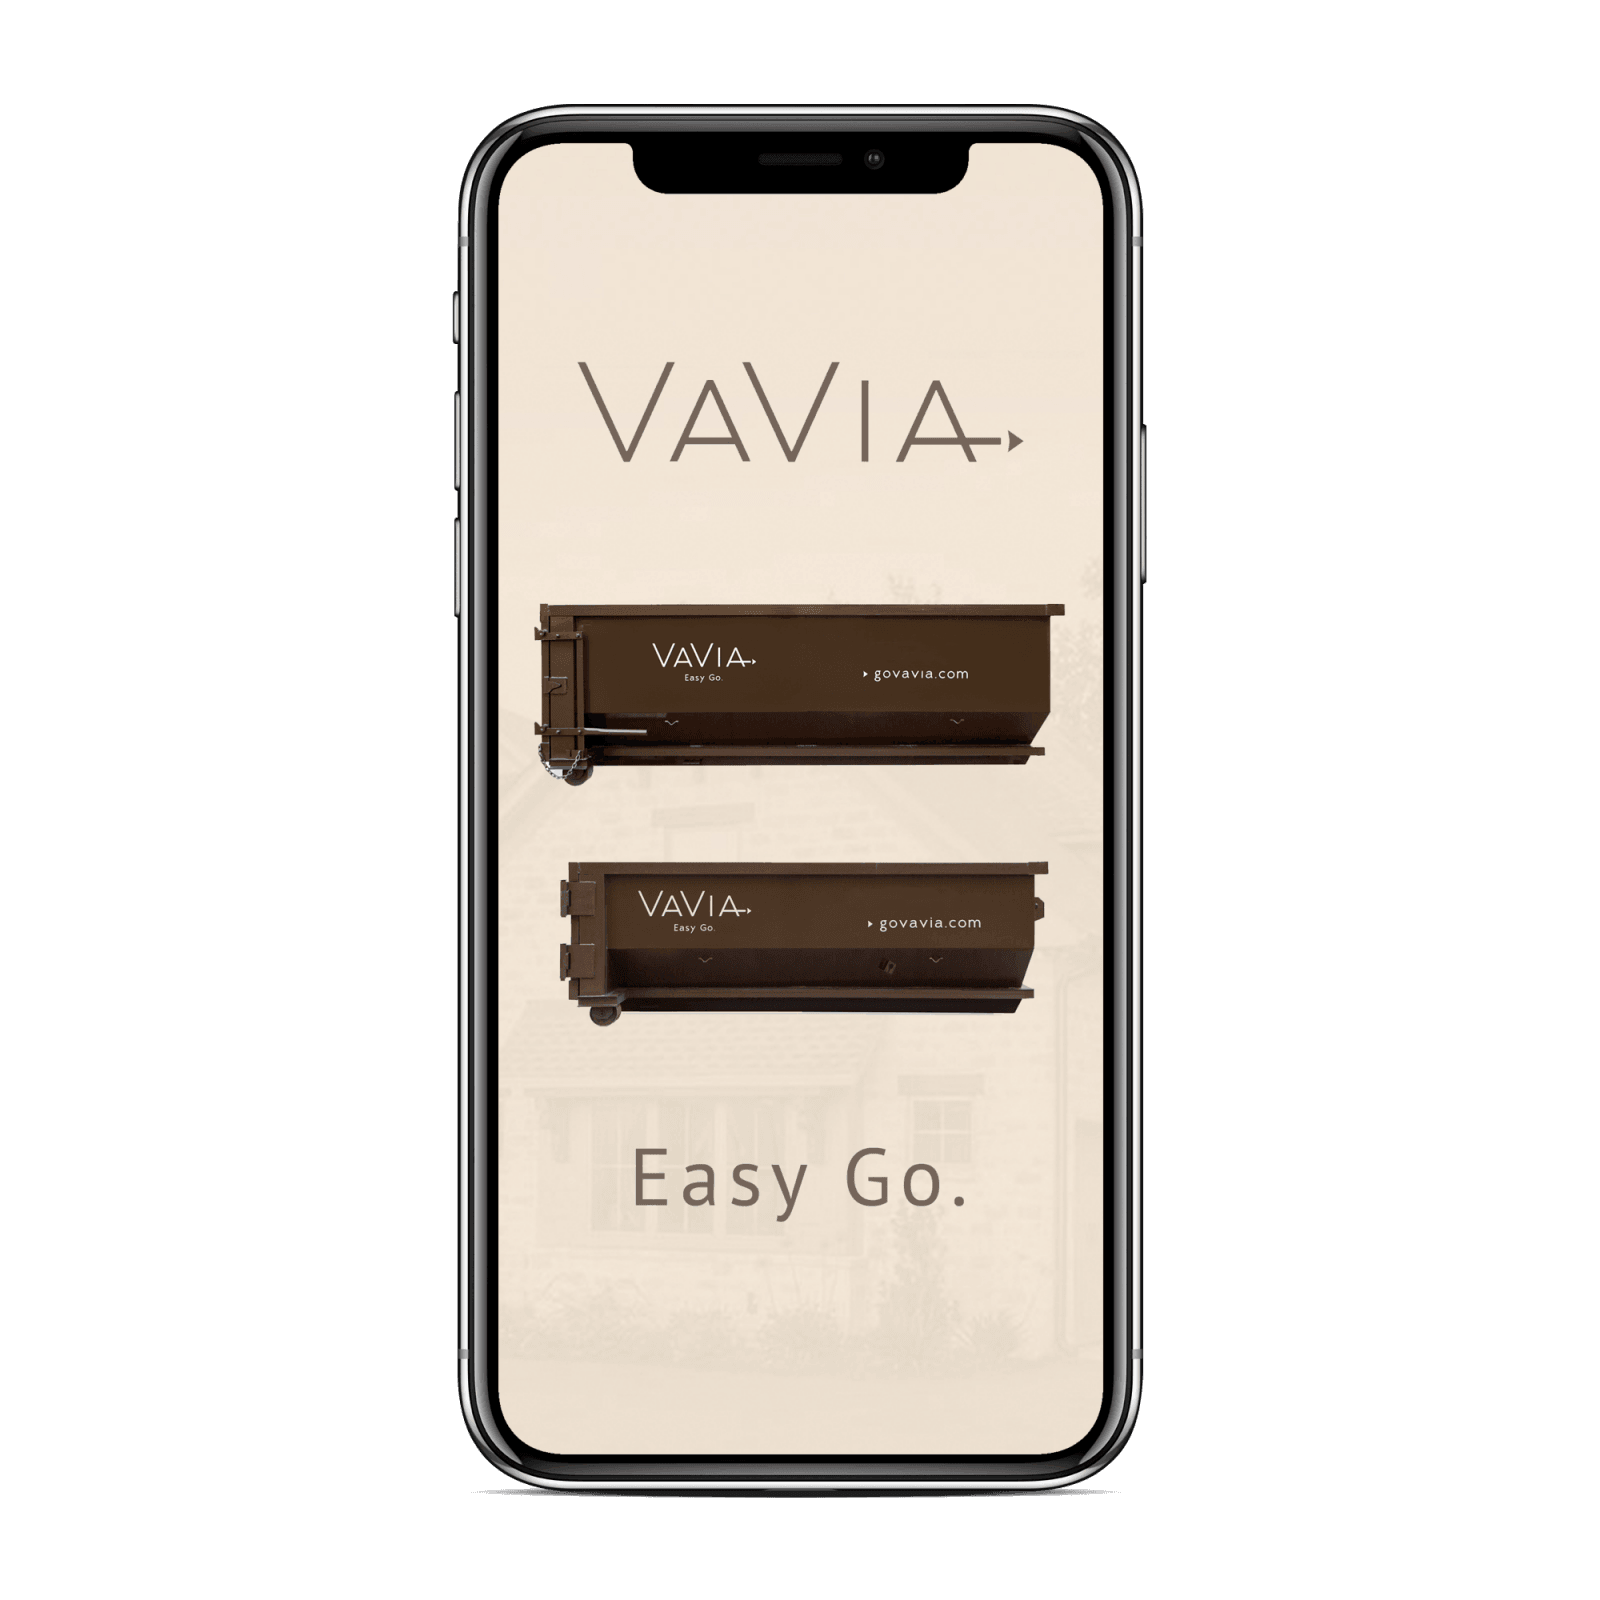 vavia-mobile-device_nonumber